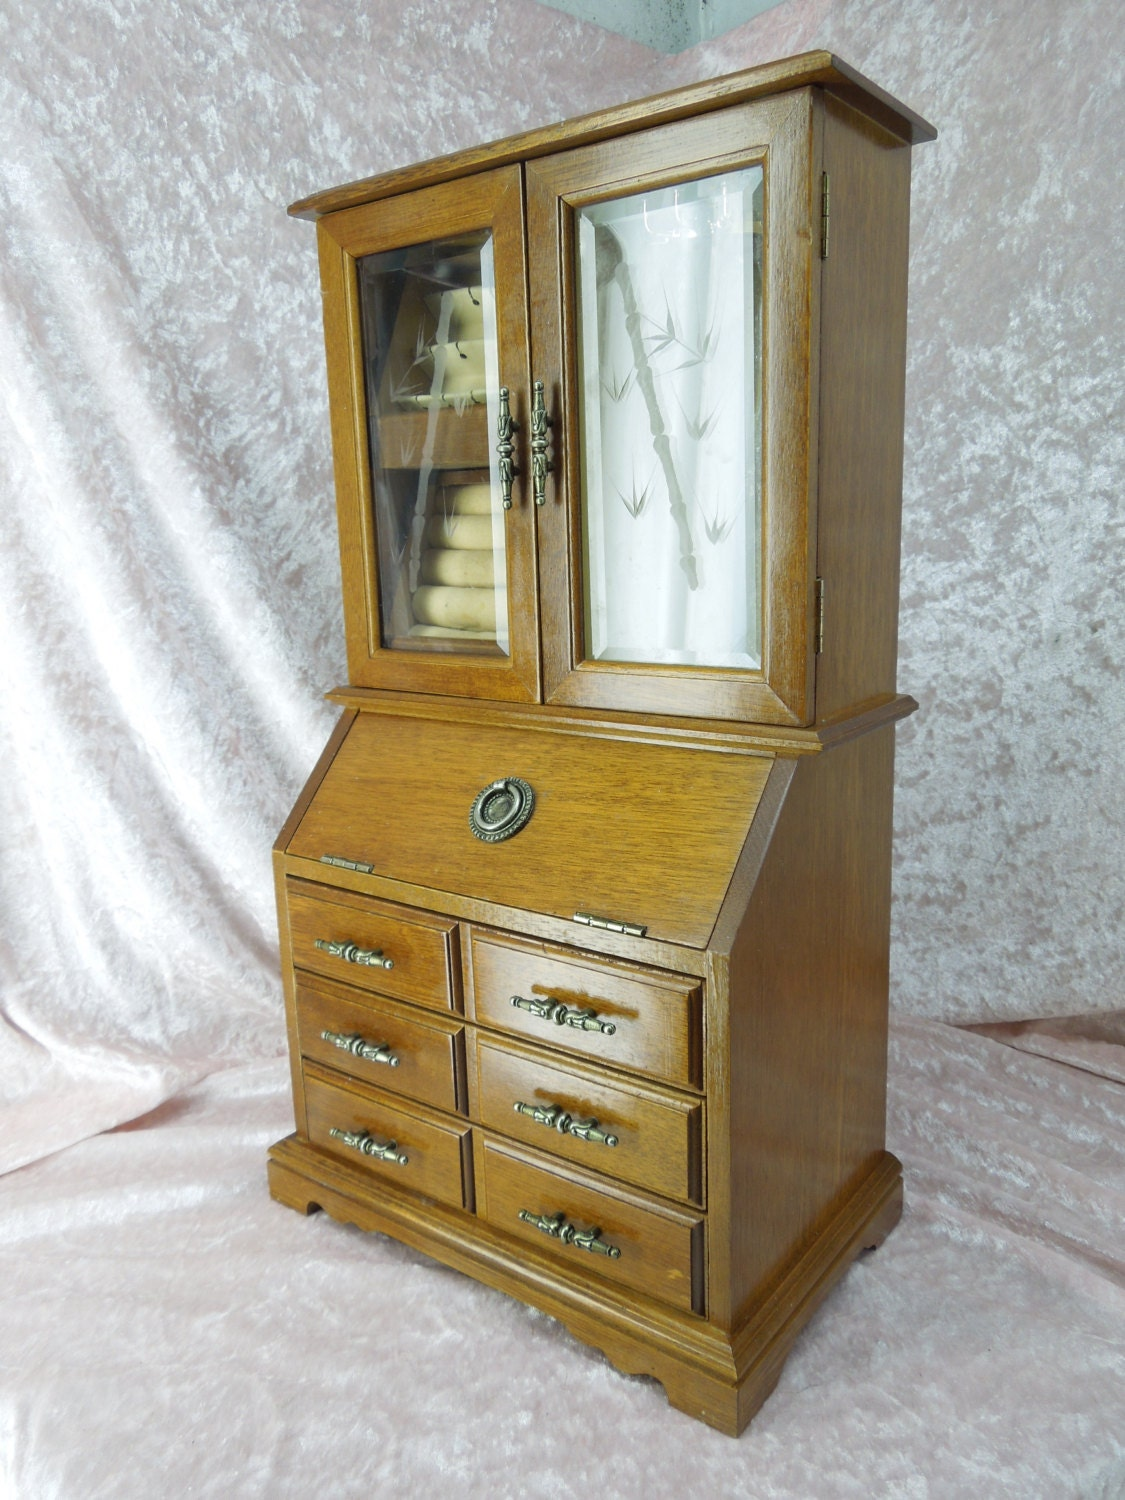 Wooden Jewelry Box in the Style of an Old Secretary Desk